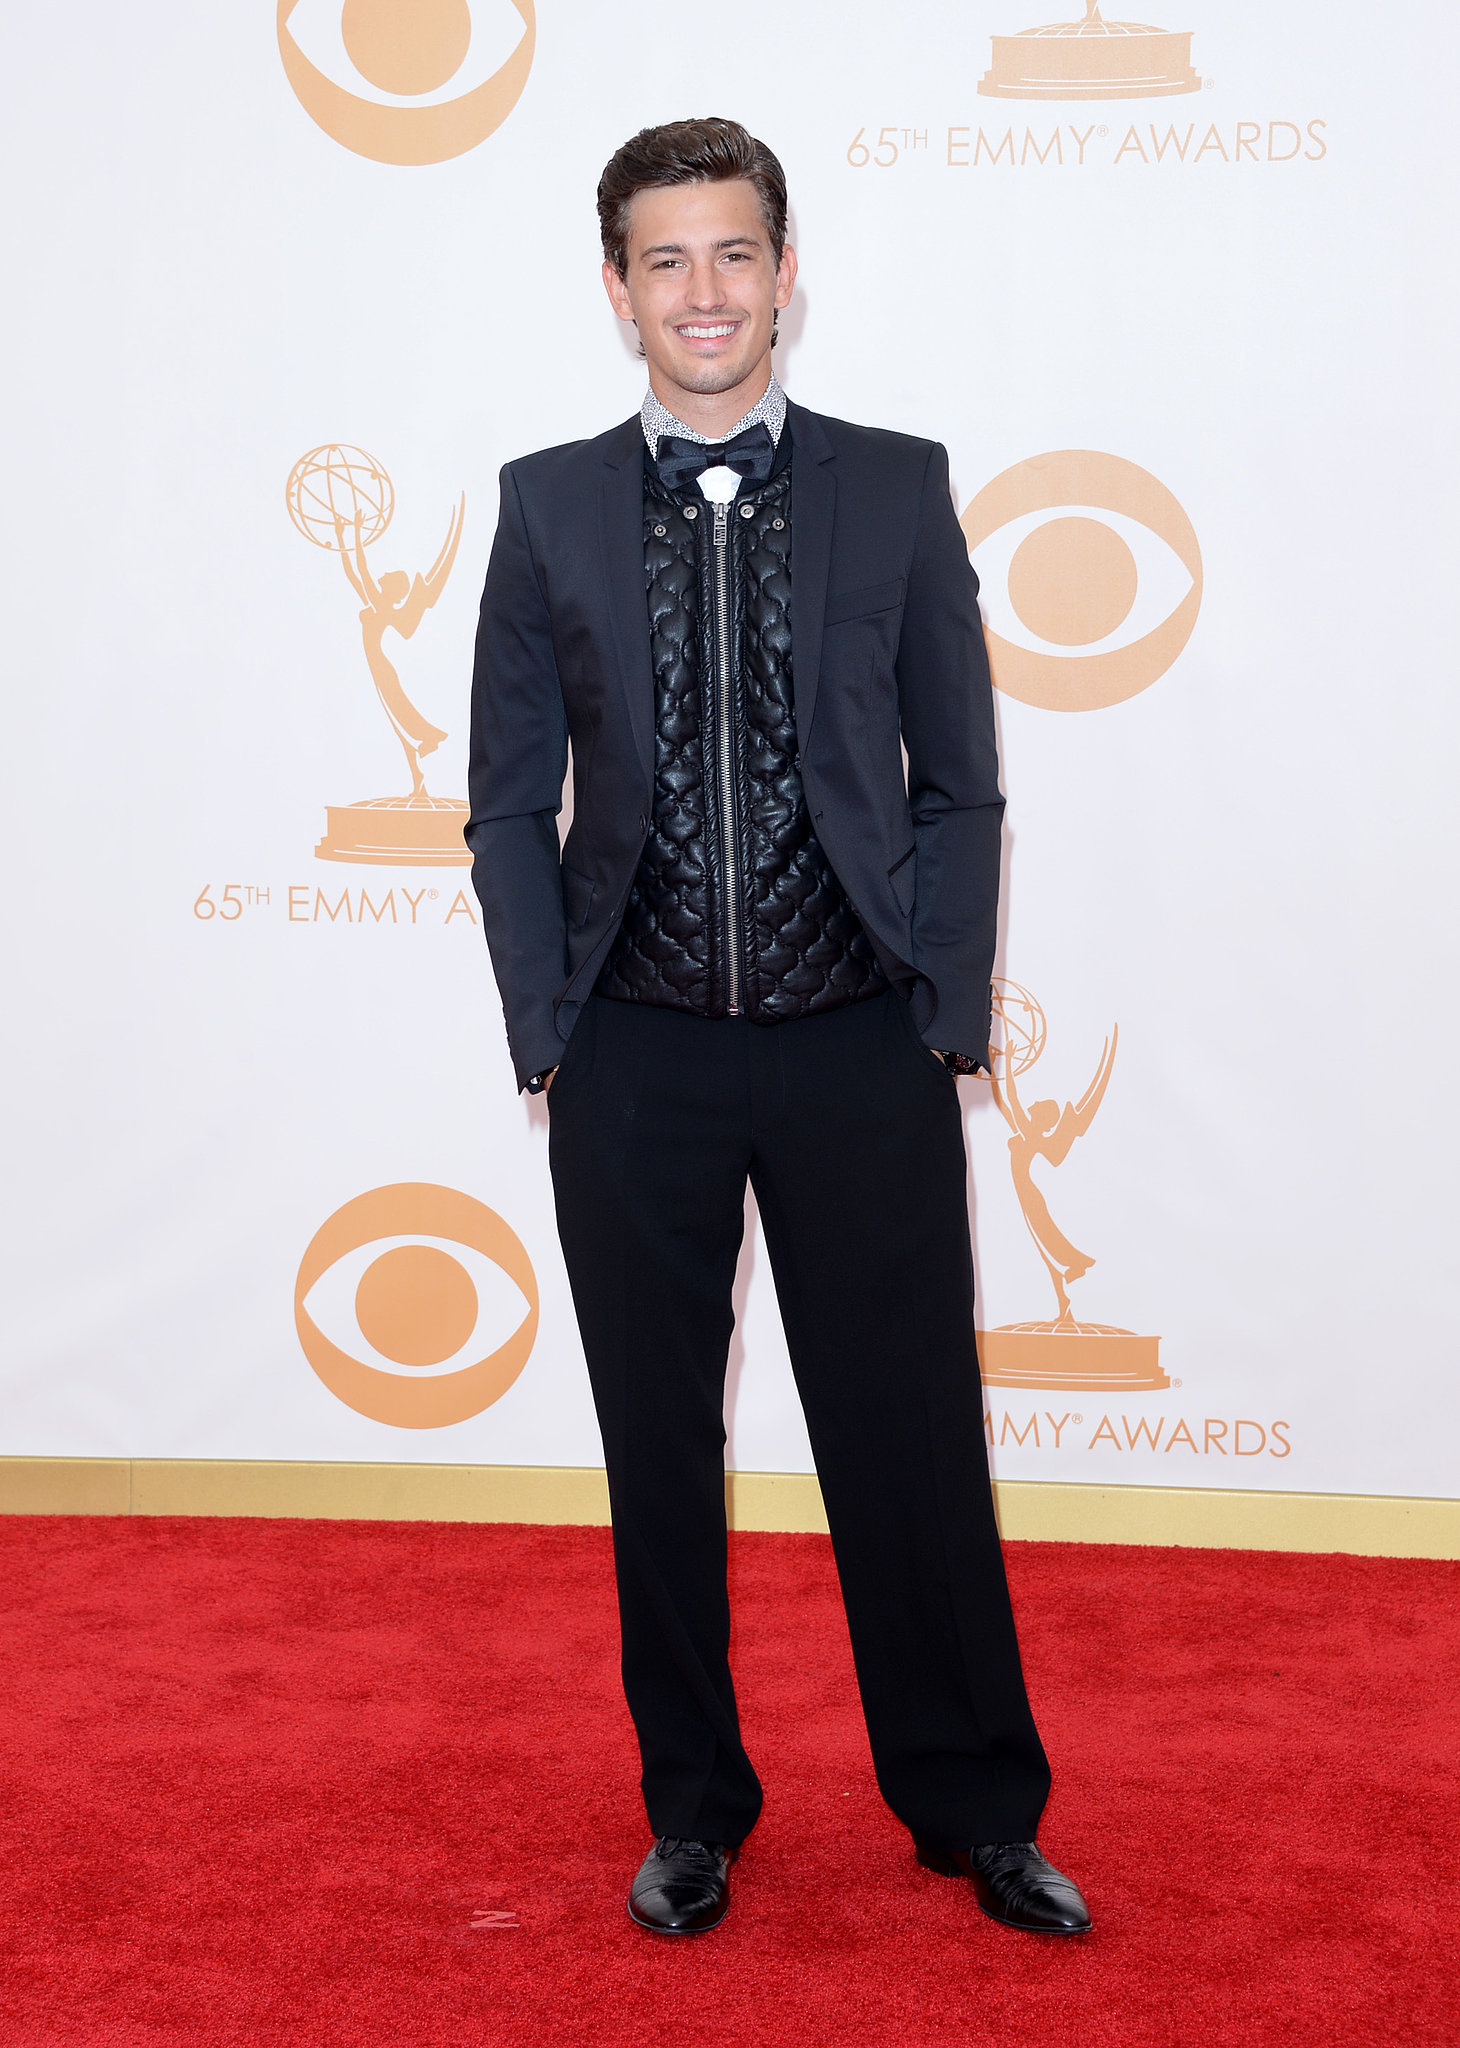 Actor Asher Monroe hit the red carpet at the Emmys.